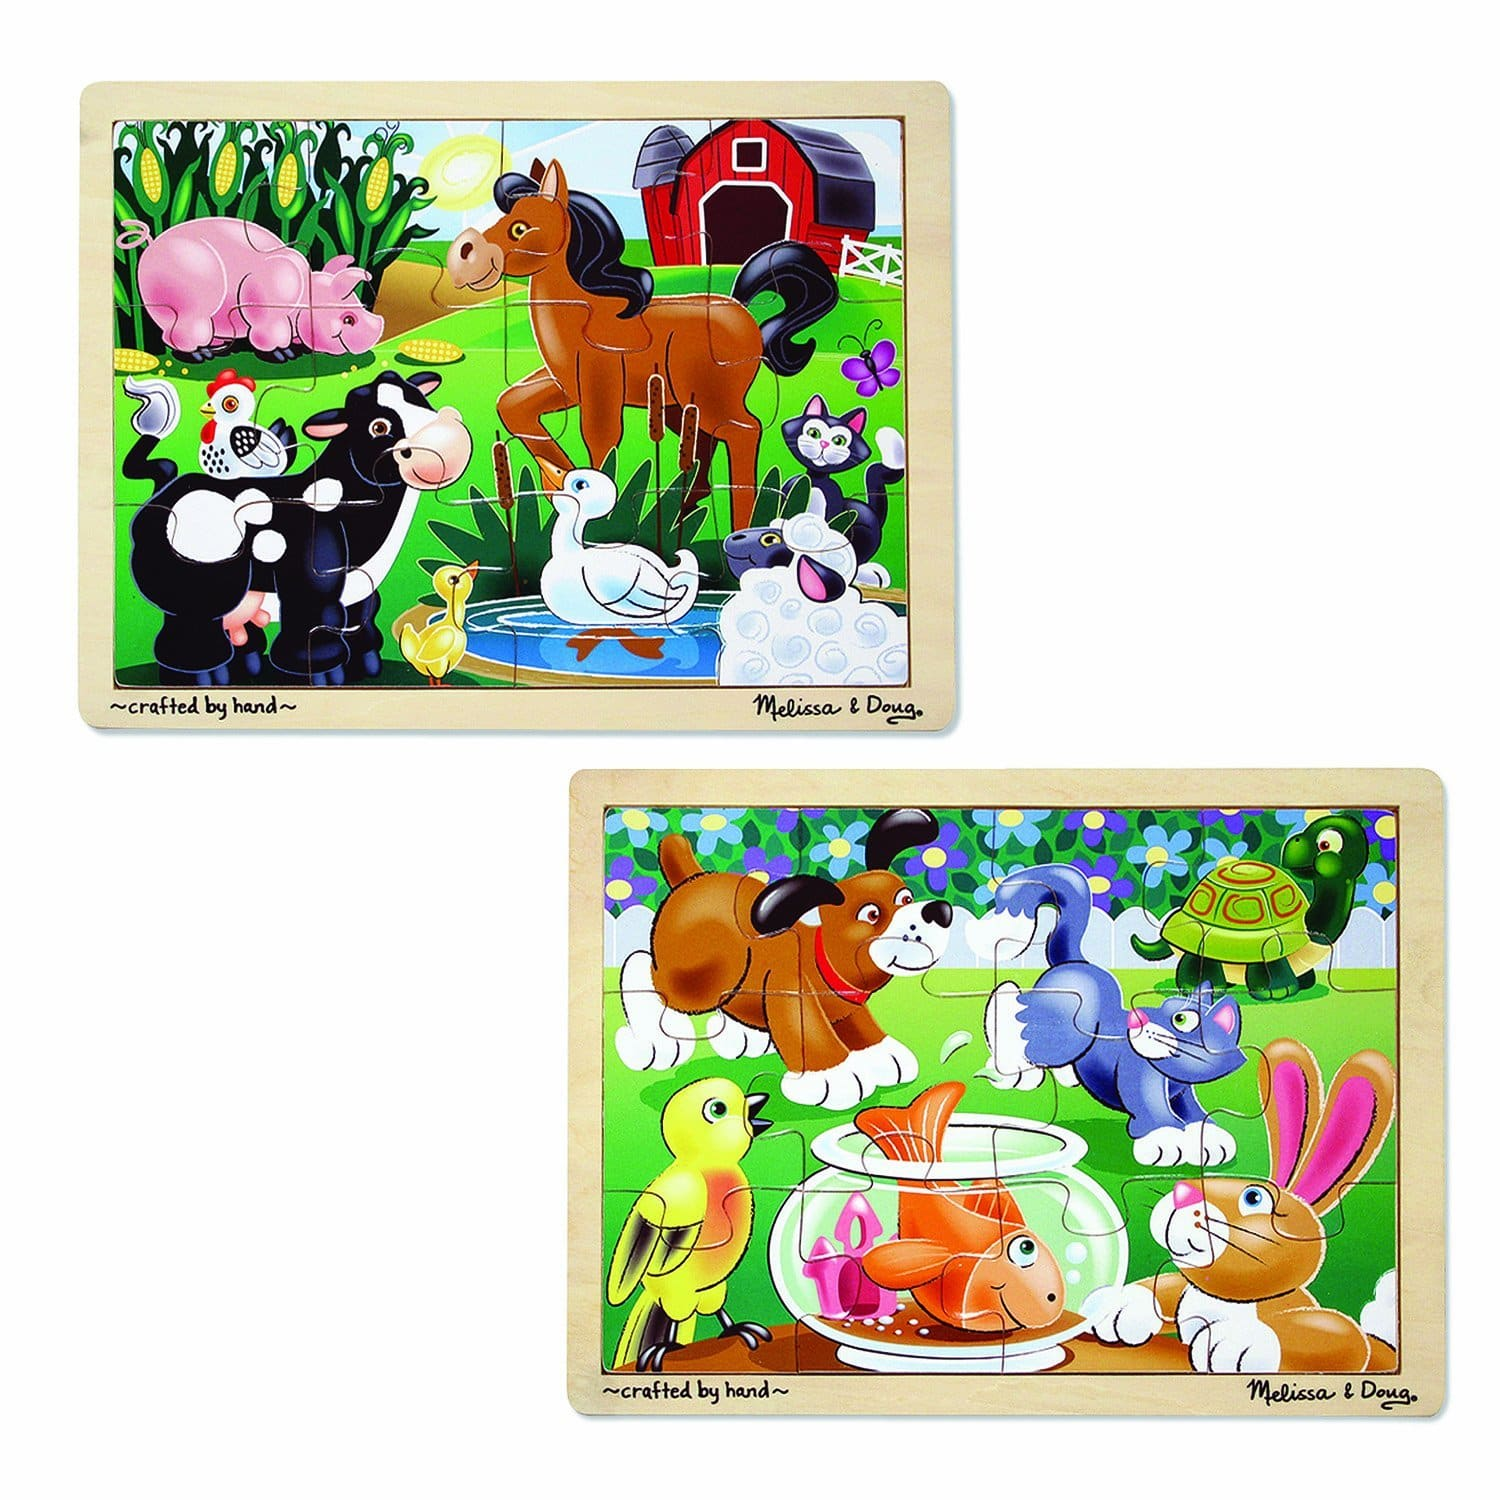 Set of 2 Melissa & Doug Jigsaw Puzzles: On the Farm & Playful Pets for $7 + free shipping *Kohl's Cardholders Deal*